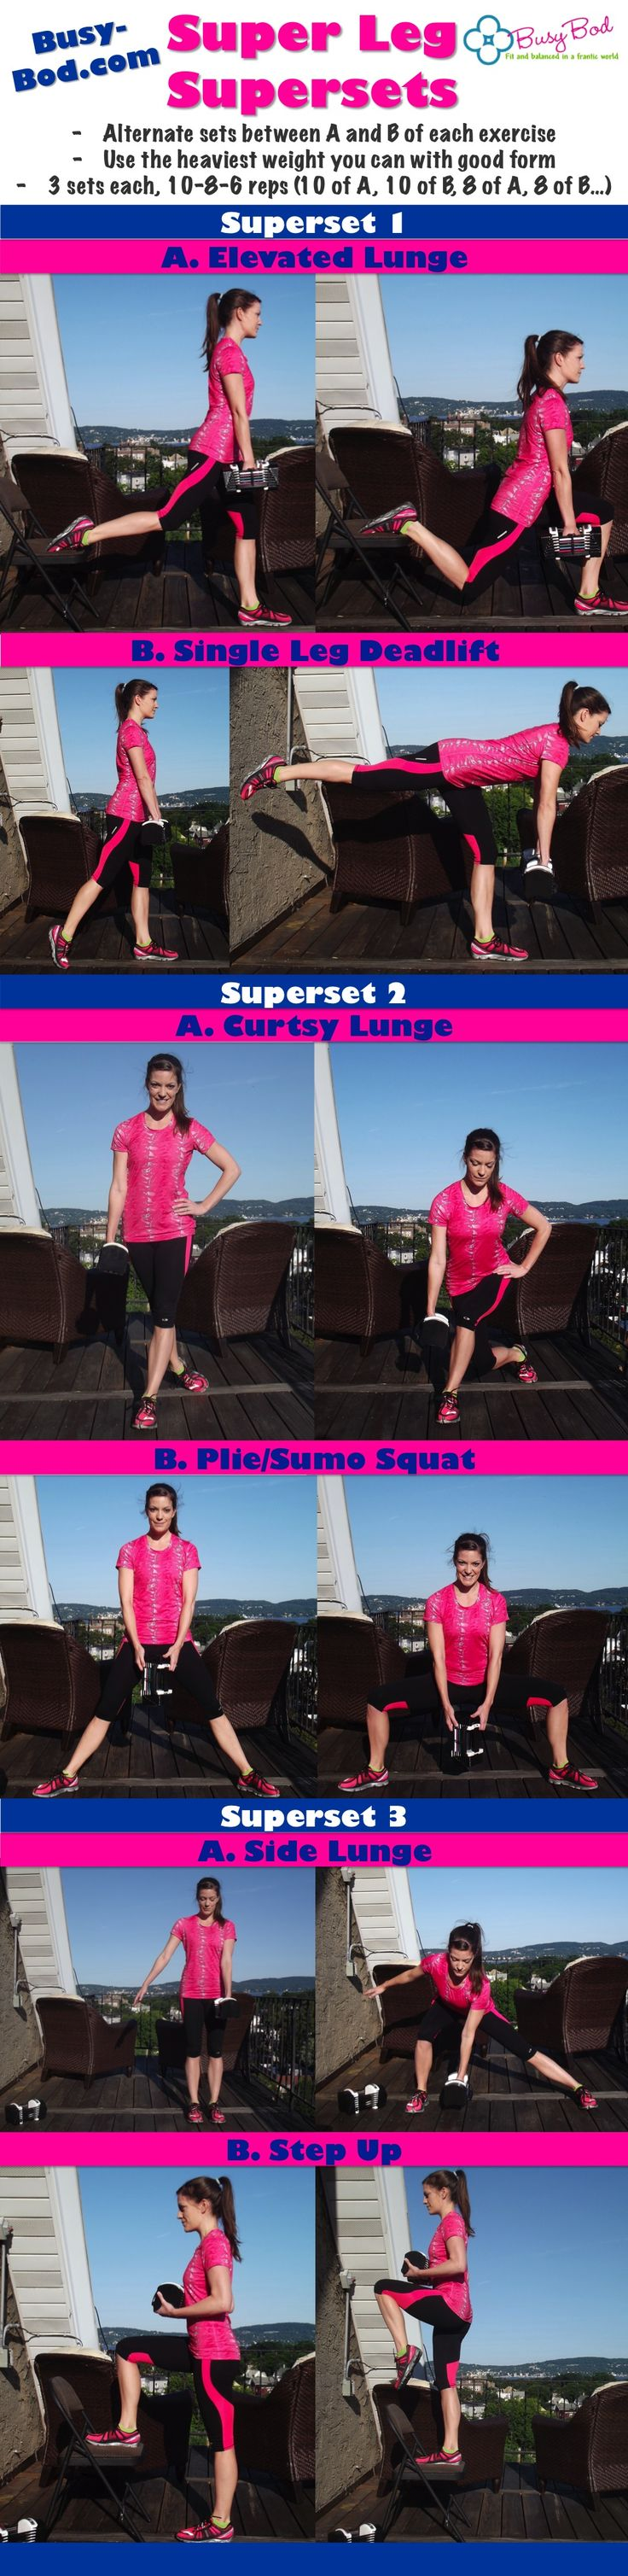 Shawn Johnson's The Body Department - Super Leg Supersets Workout